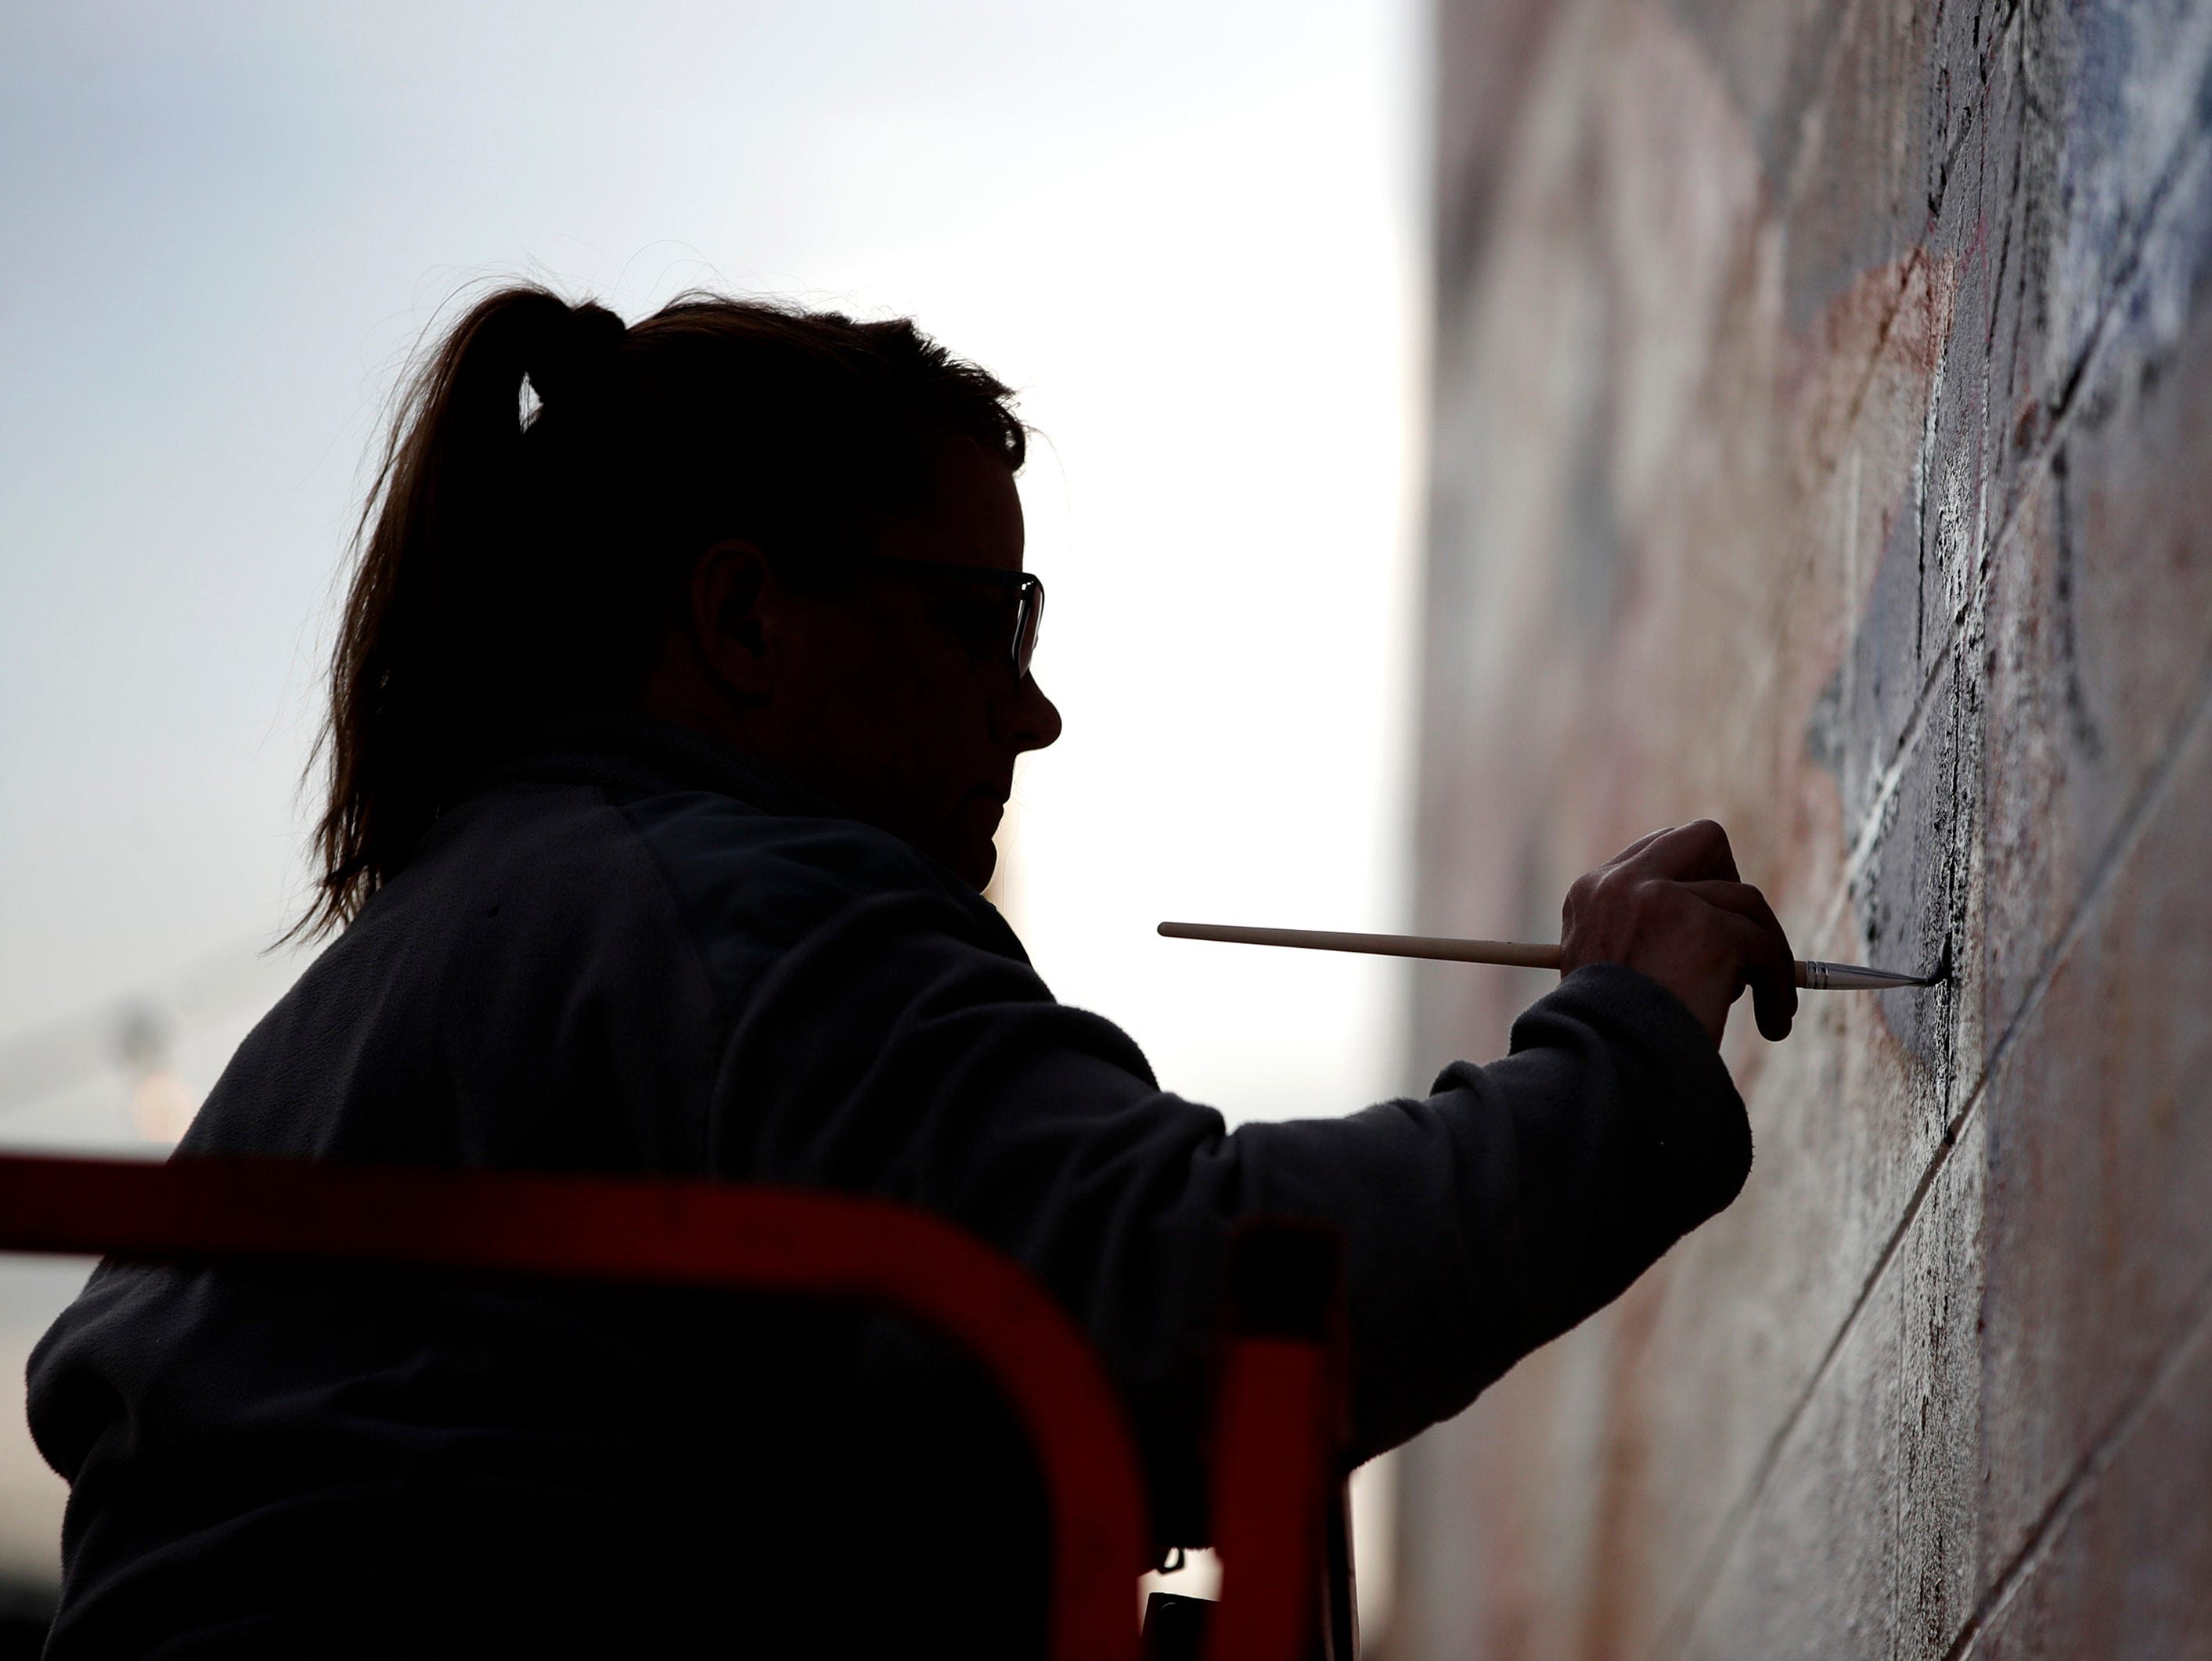 """Jodie Naze paints a mural entitled """"Brillion Pride"""" on the wall of Schroth Brillion Floral and Gifts during Bazaar After Dark Saturday, May 11, 2019, in Brillion, Wis. Danny Damiani/USA TODAY NETWORK-Wisconsin"""